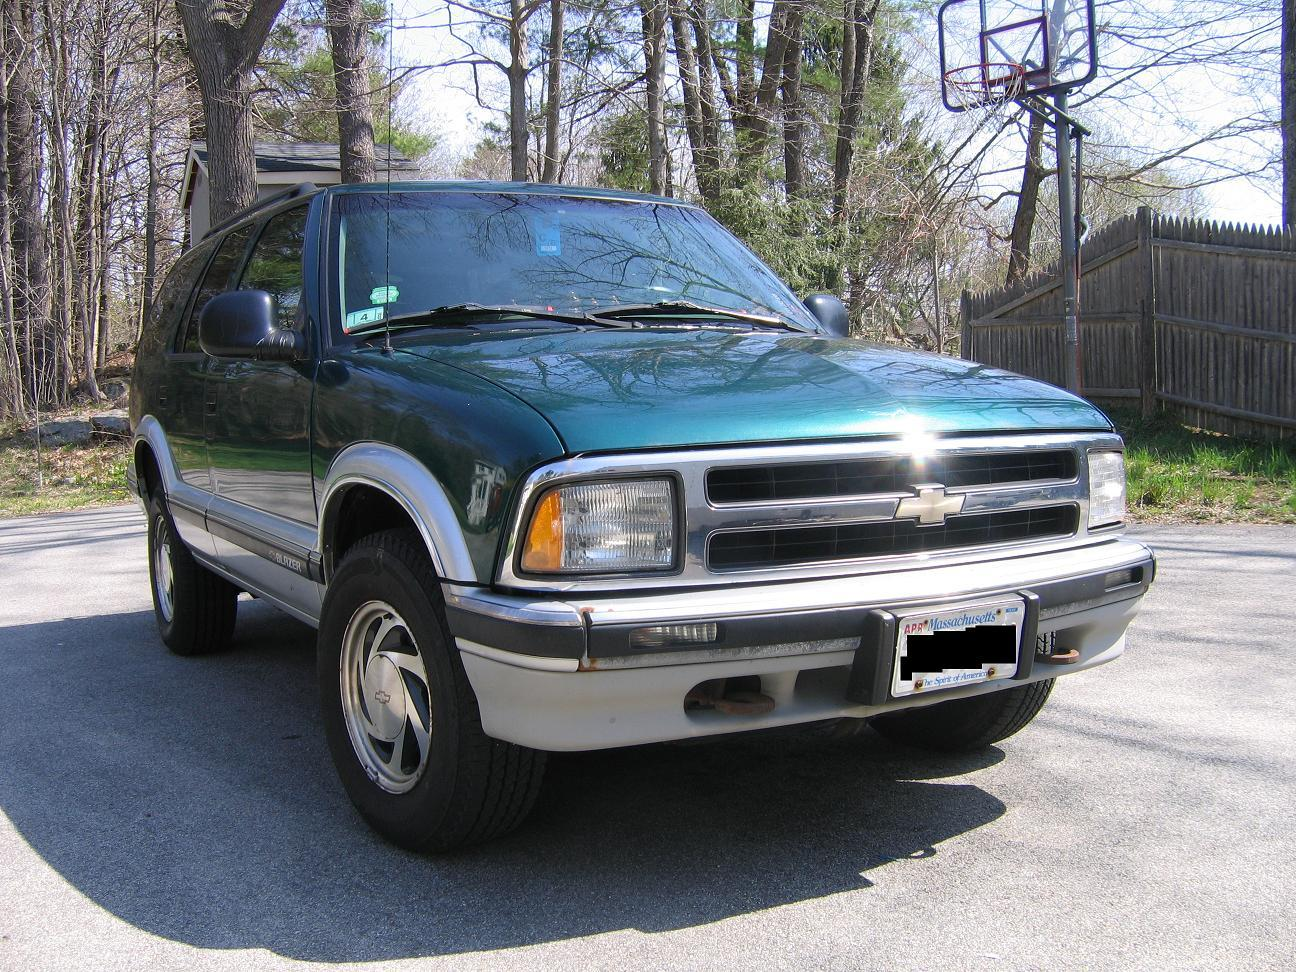 Jaye072 1997 Chevrolet Blazer Specs, Photos, Modification ...